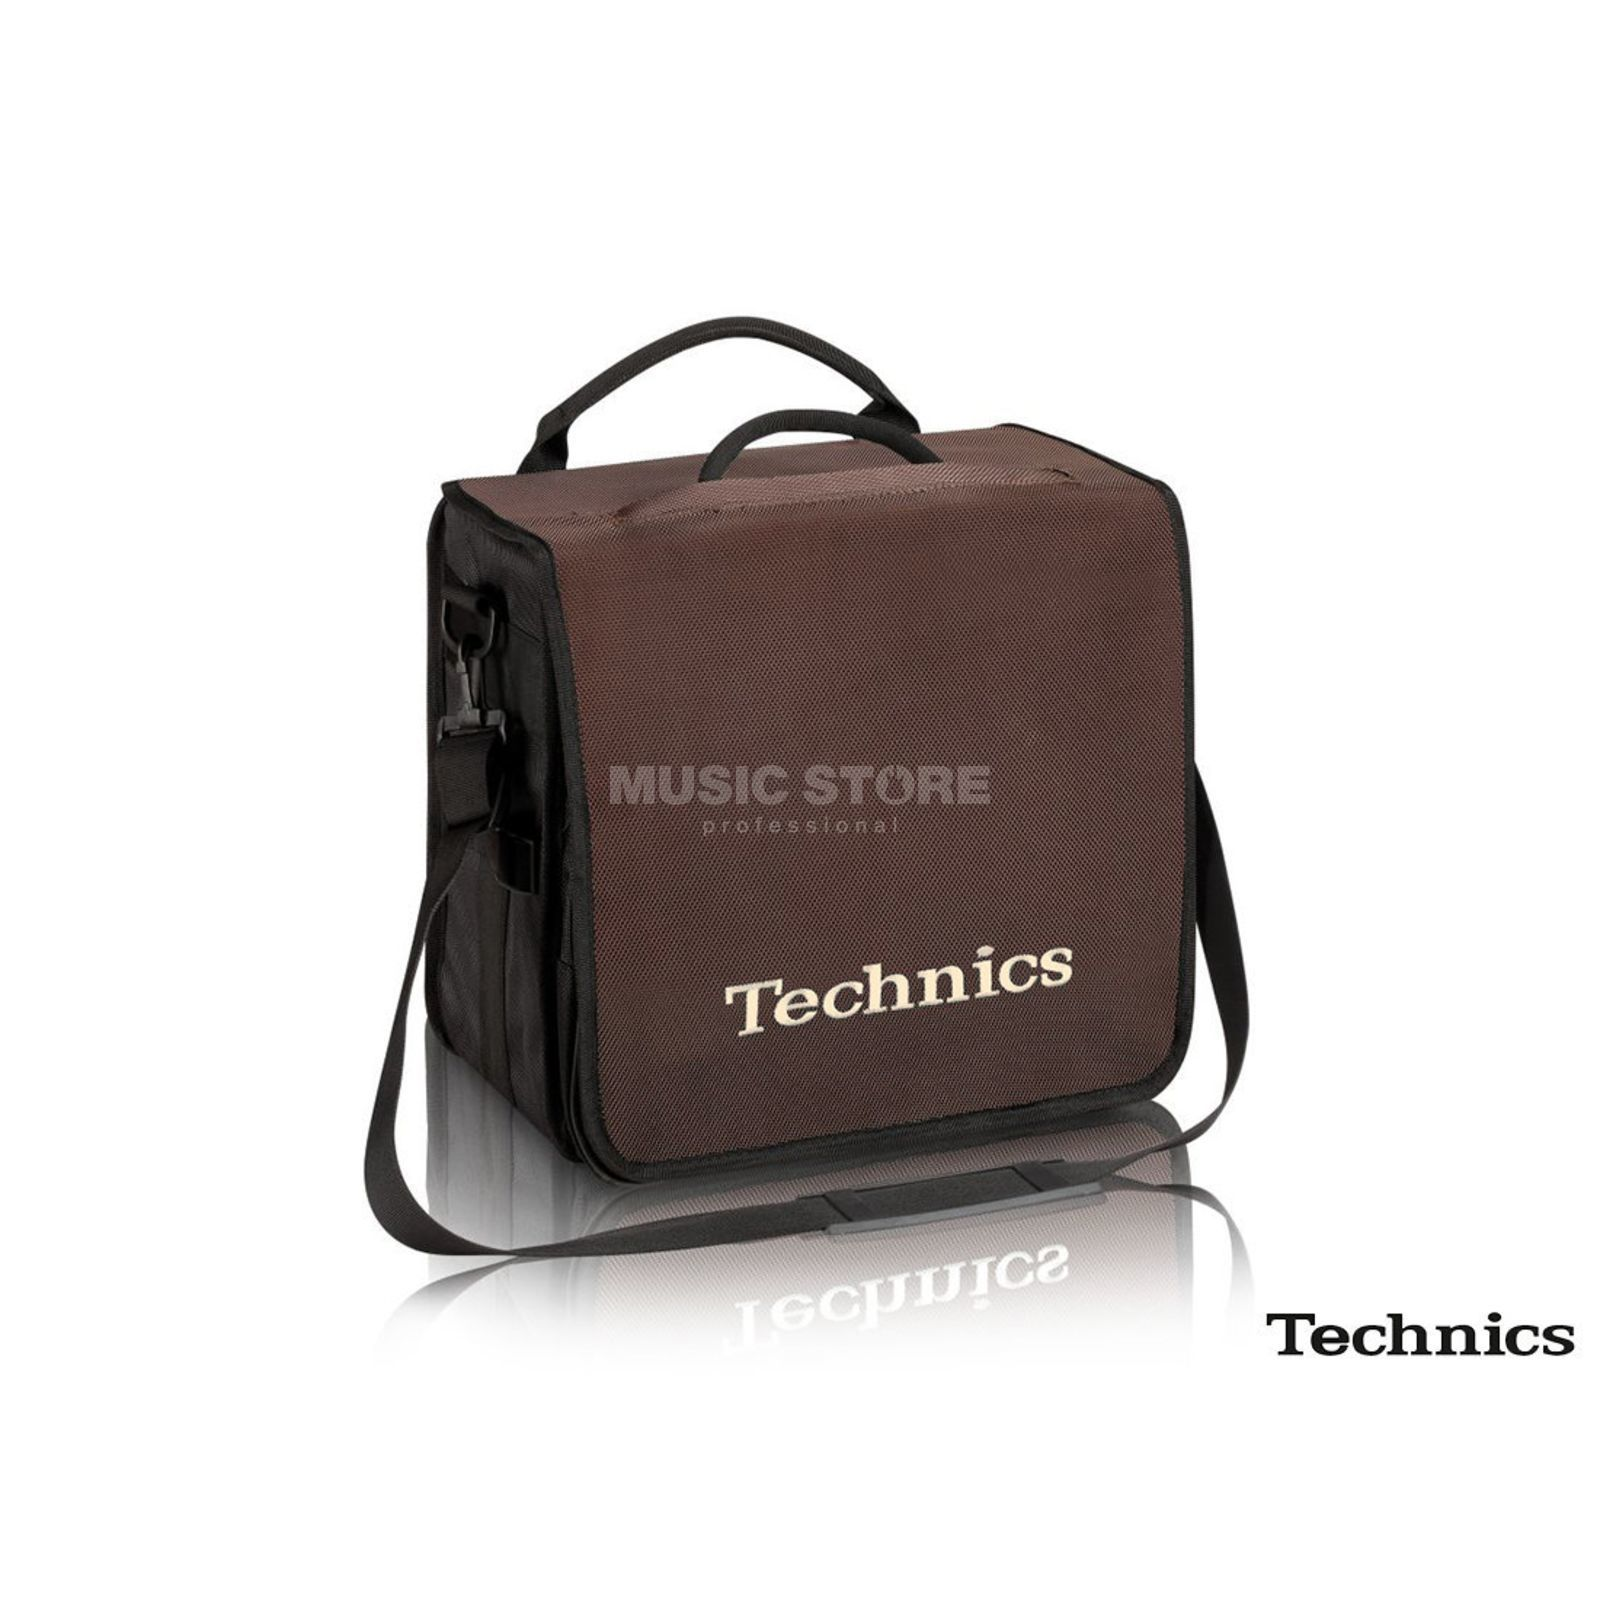 Technics BackBag braun-beige  Product Image